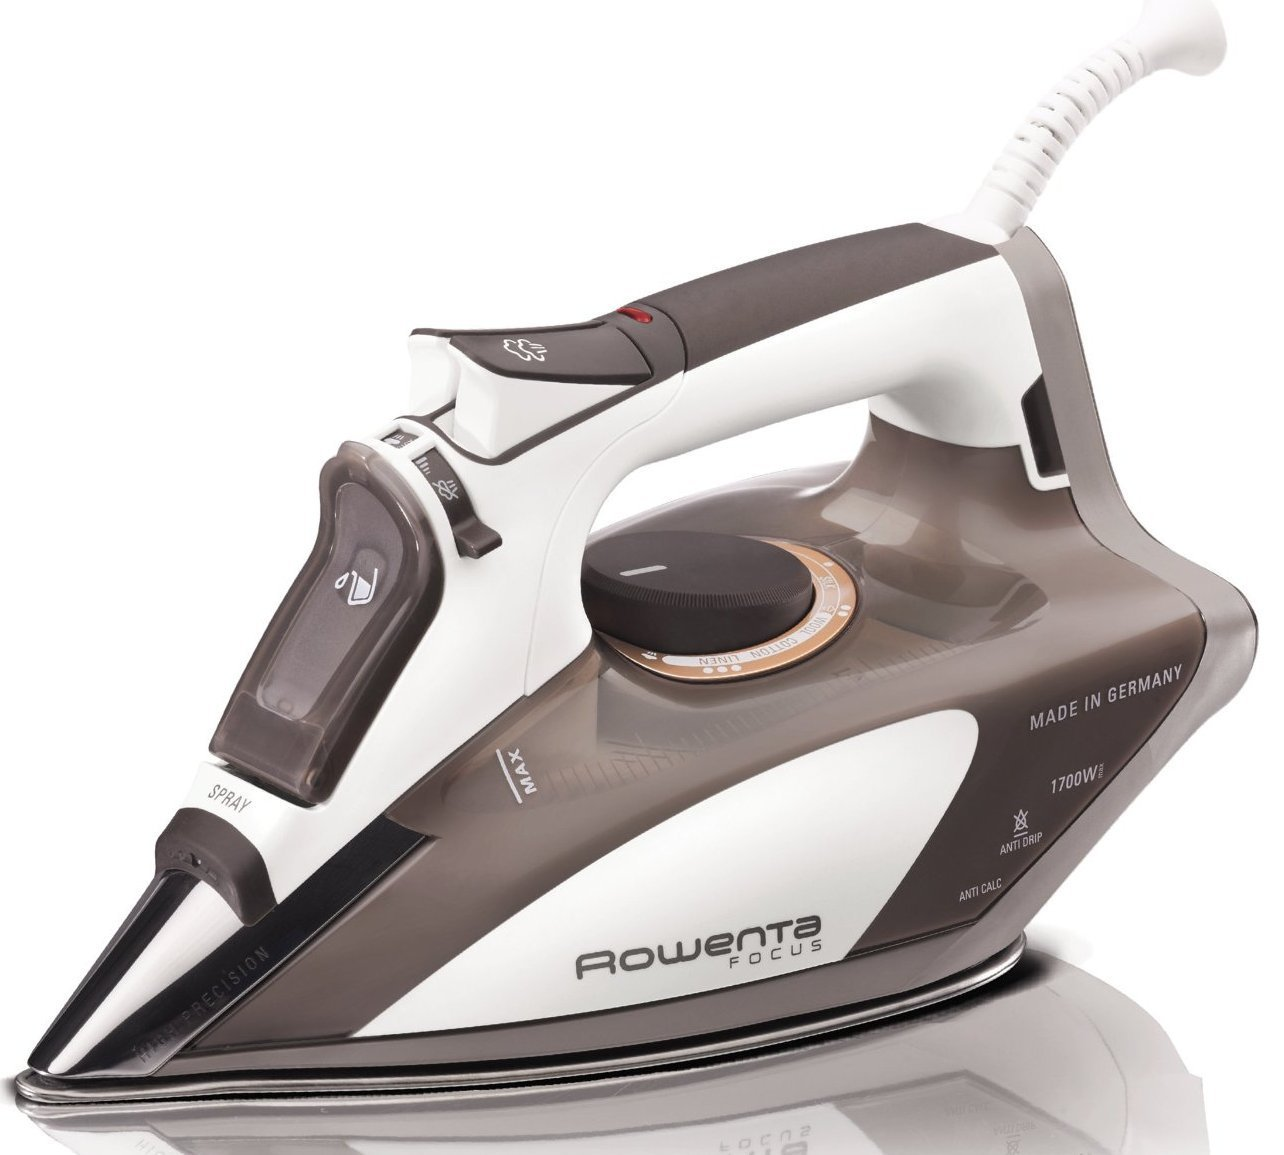 best steam iron the 8 best steam irons to buy in 2018 bestseekers 10022